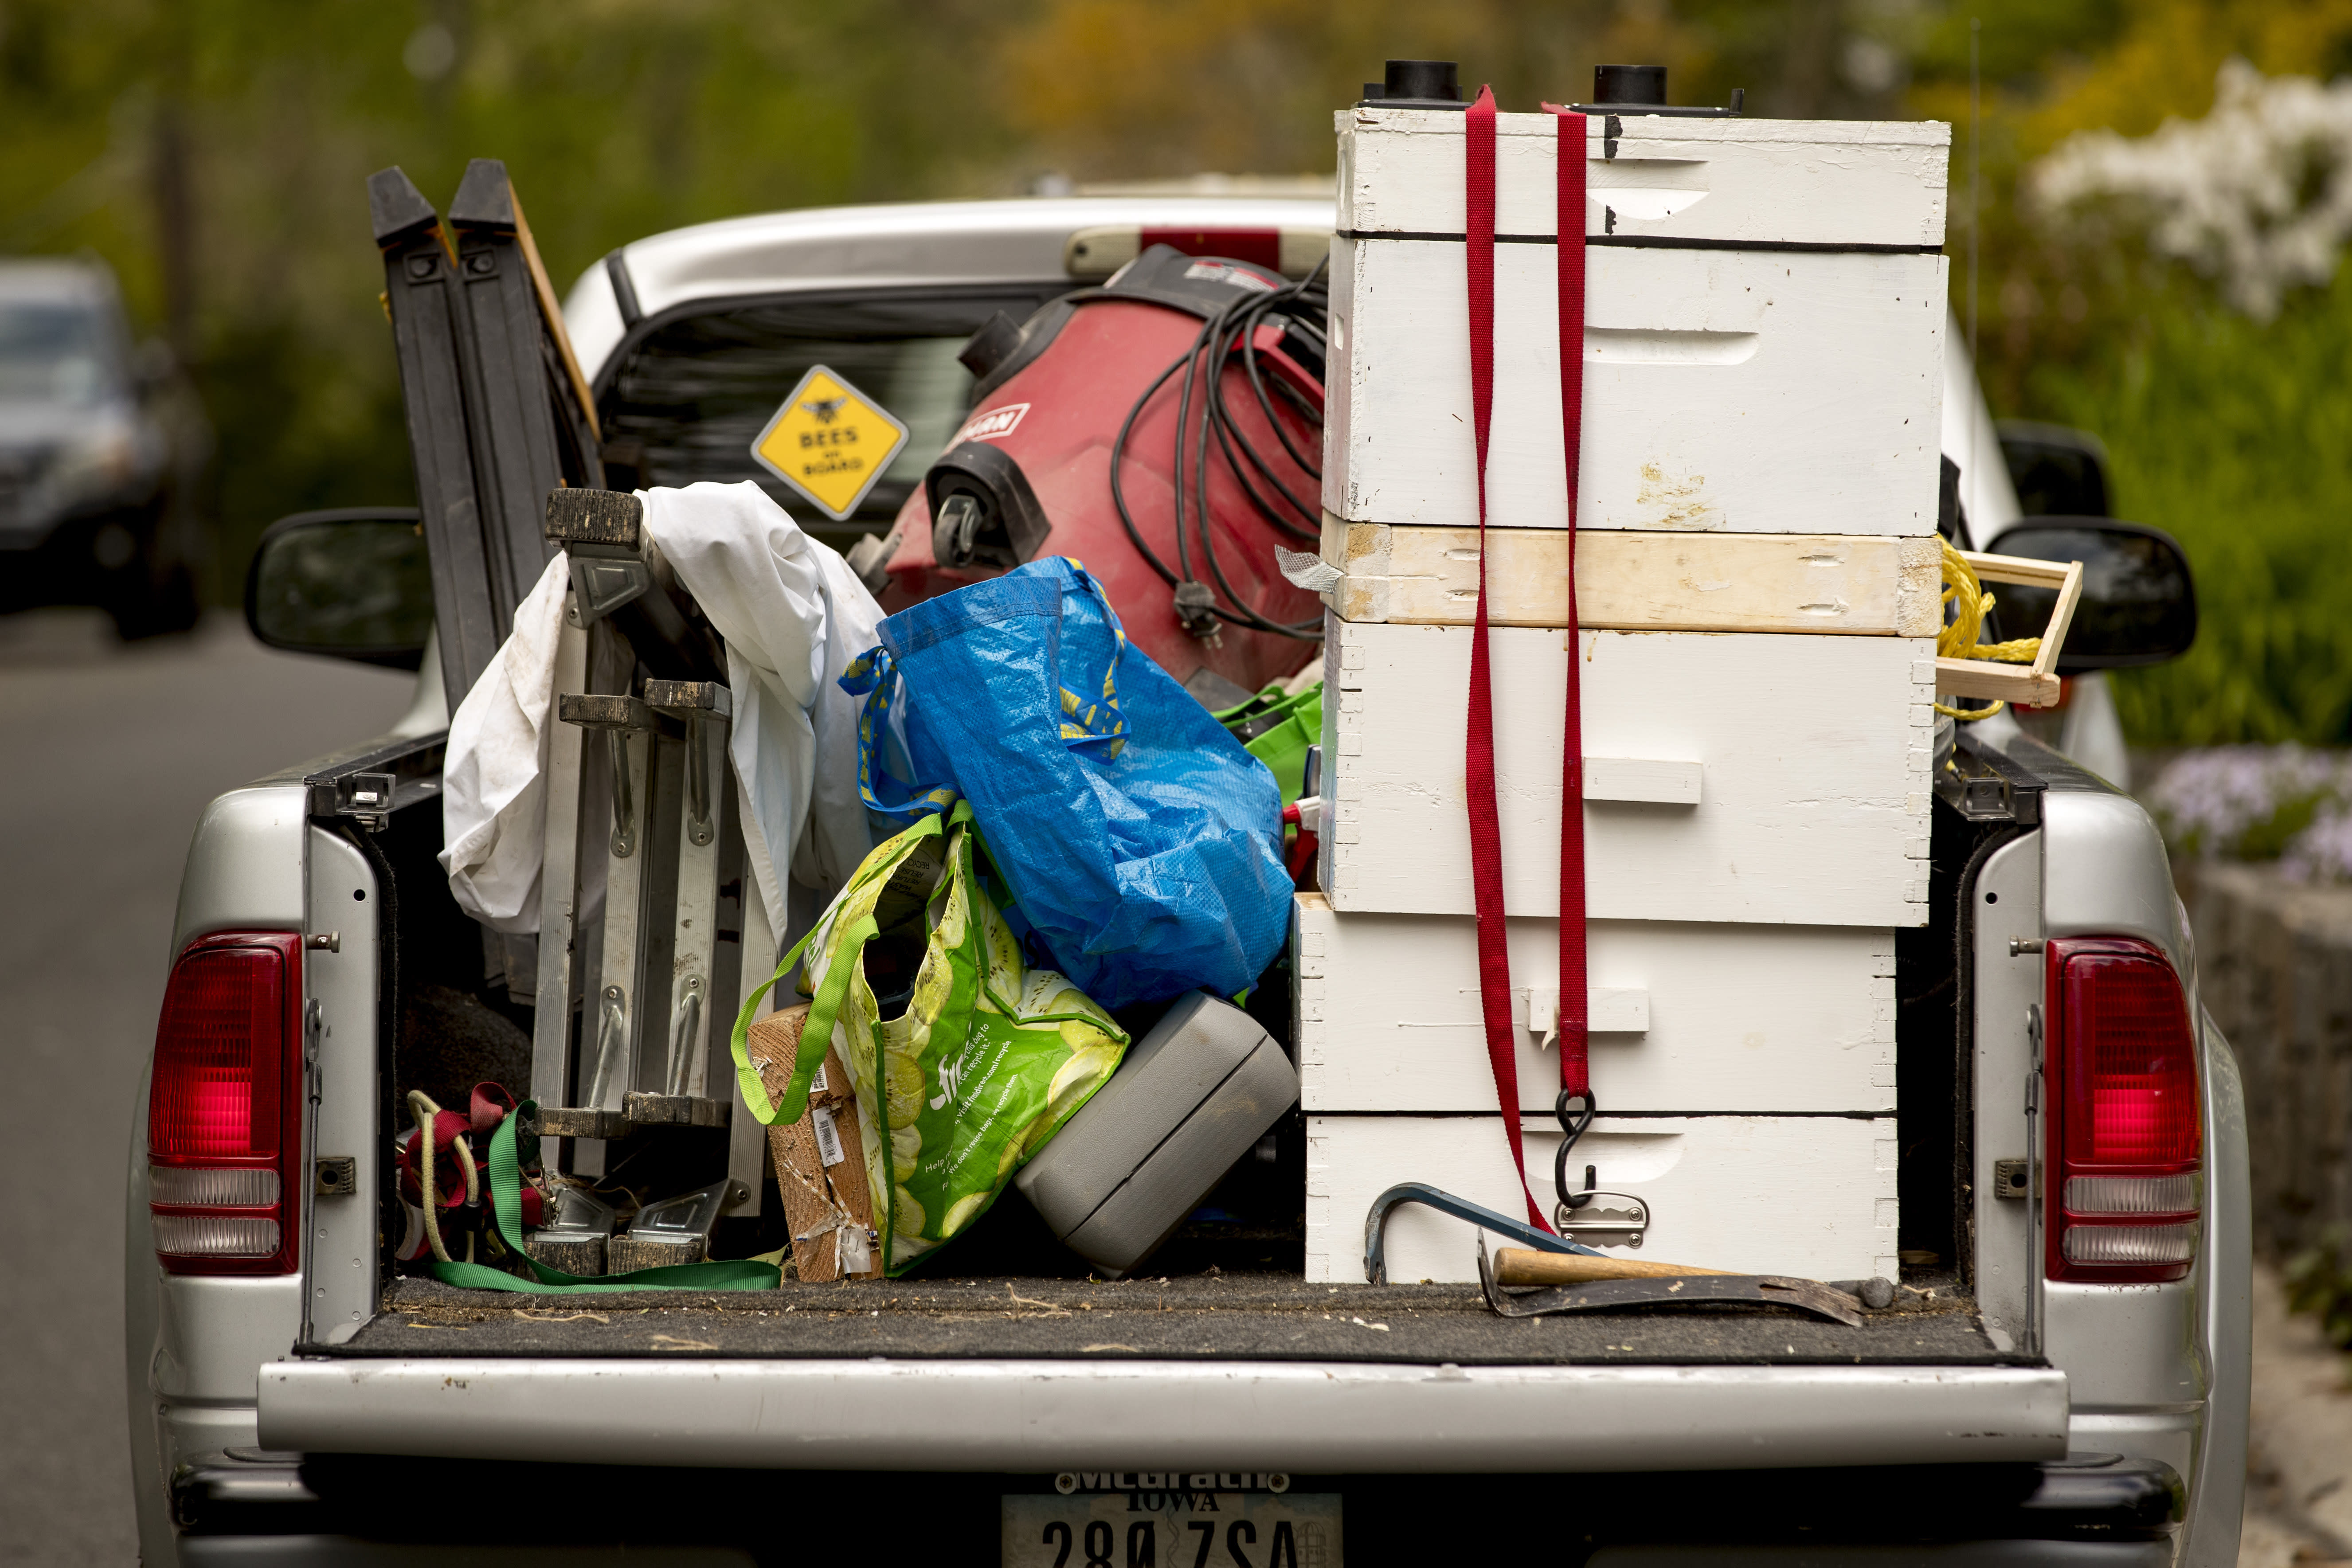 Various tools and bee boxes are visible in the truck of beekeepers Sean Kennedy and Erin Gleeson as they inspect a swarm of honey bees, Saturday, April 25, 2020, in Washington. The District of Columbia has declared beekeepers as essential workers during the coronavirus outbreak. If the swarm isn't collected by a beekeeper, the new hive can come to settle in residential backyards, attics, crawlspaces, or other potentially ruinous areas, creating a stinging, scary nuisance. (AP Photo/Andrew Harnik)